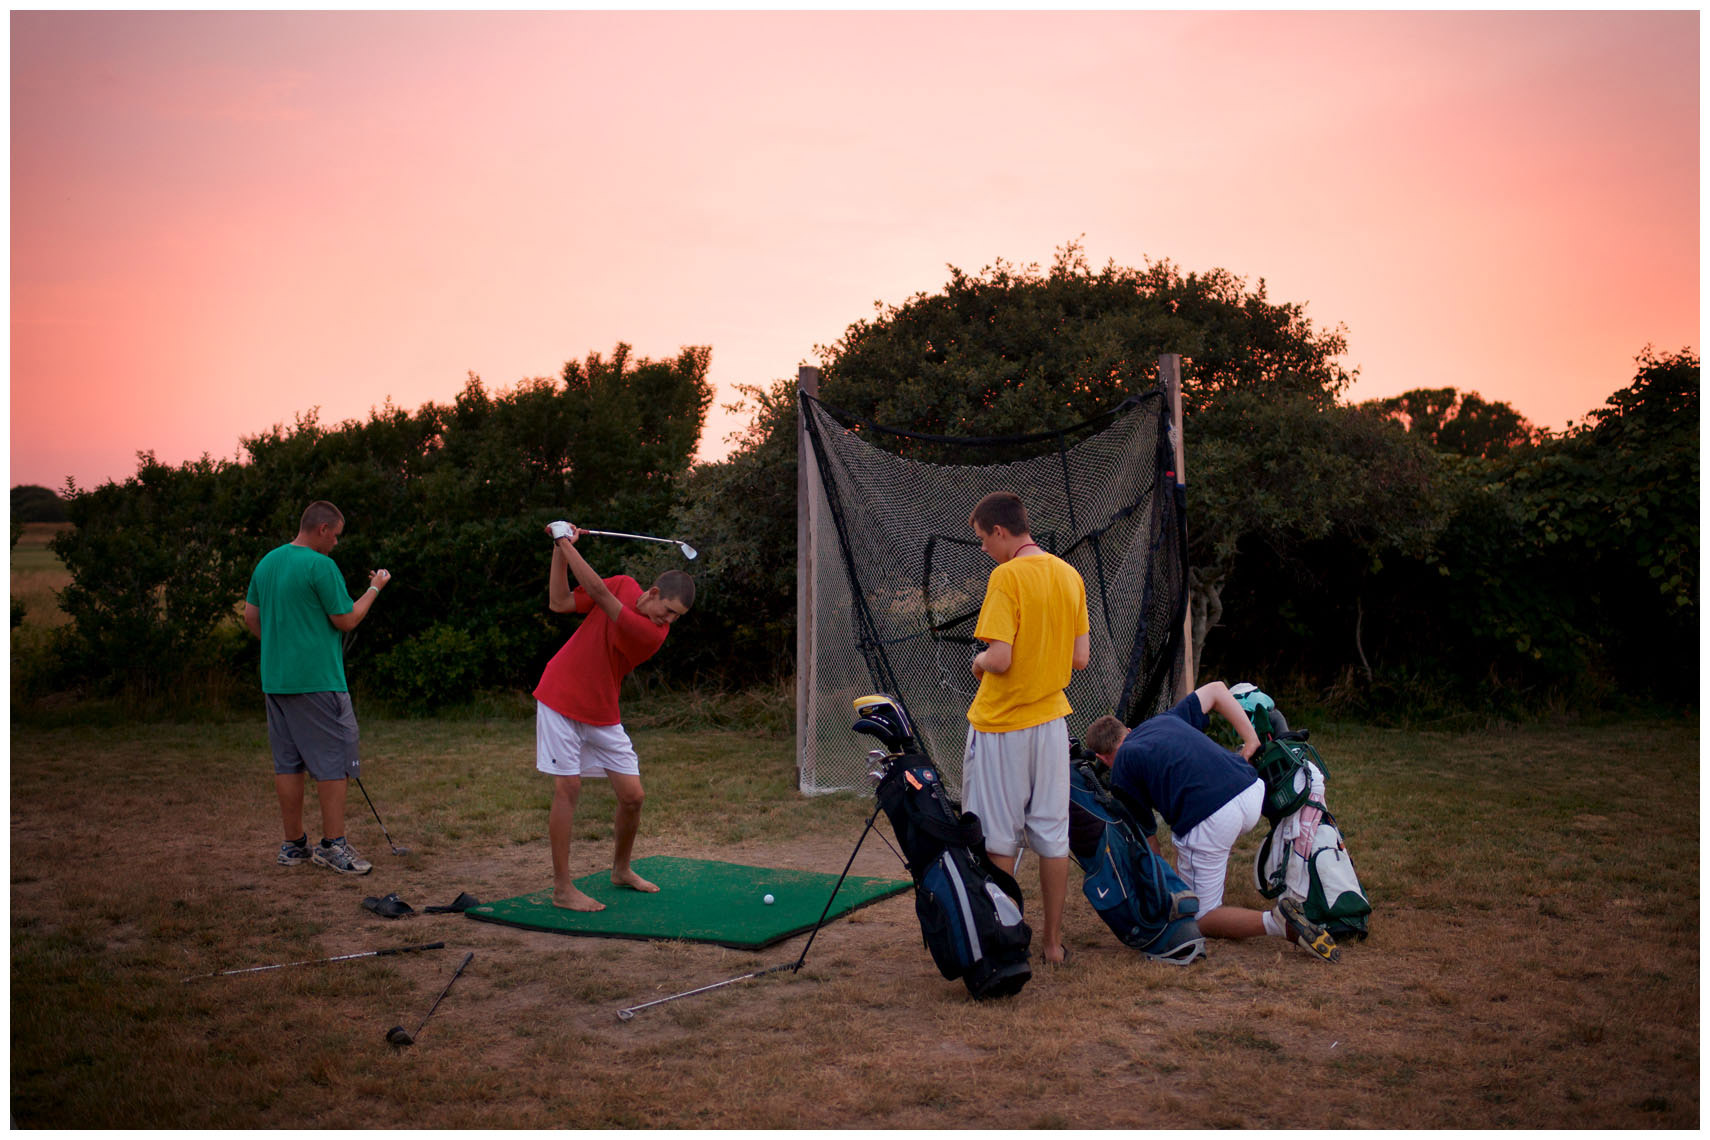 Caddie summer-campers at the Sankaty Head Golf Club on Nantucket Island.